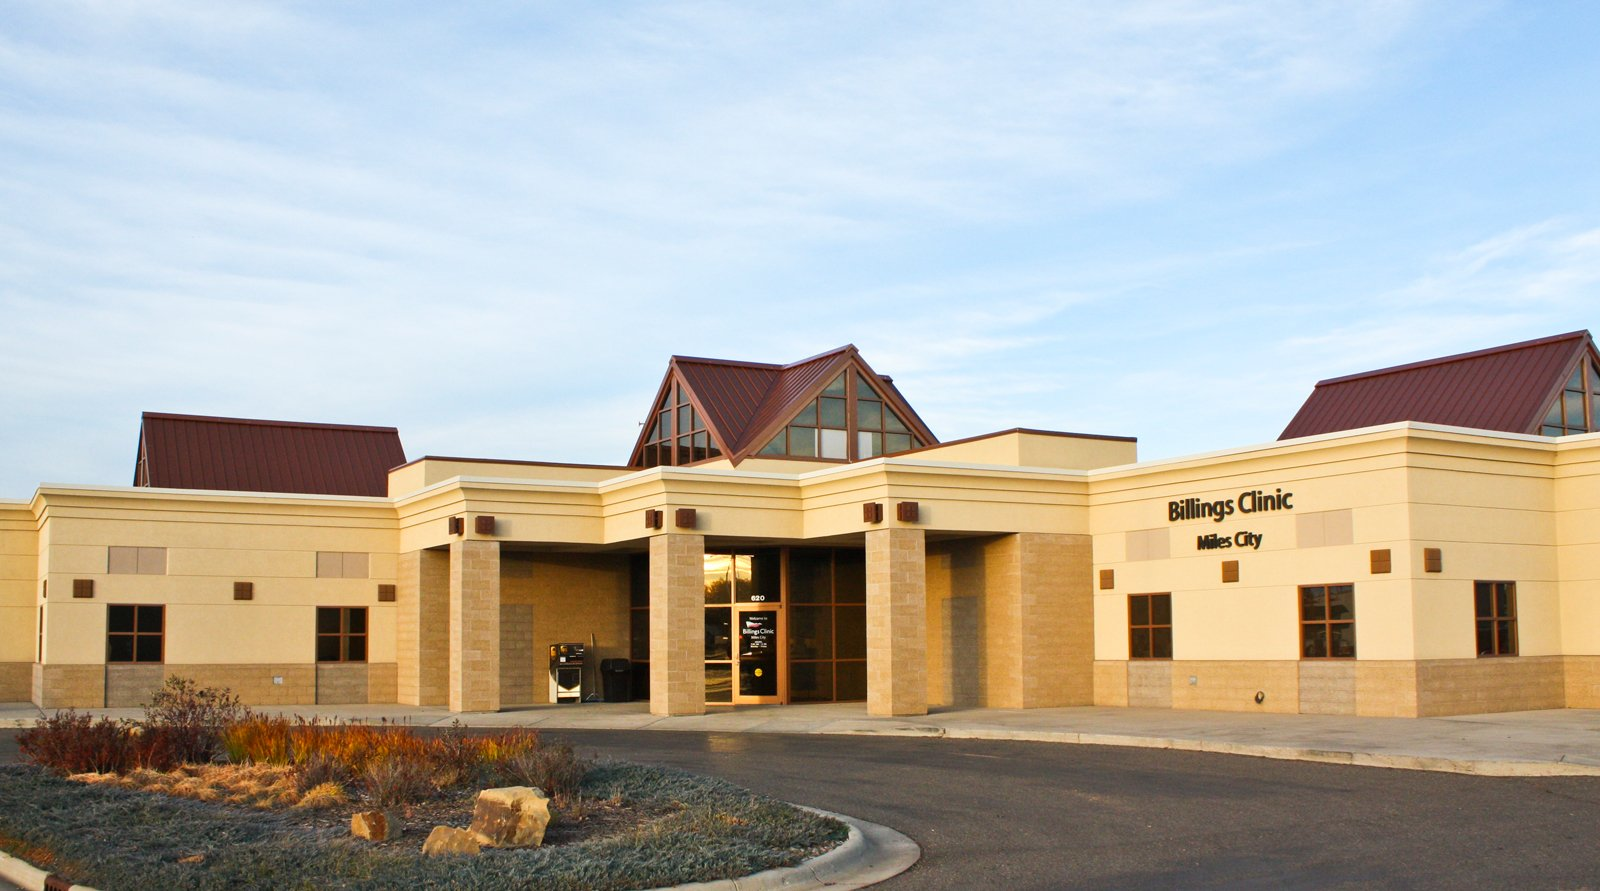 Billings Clinic Miles City